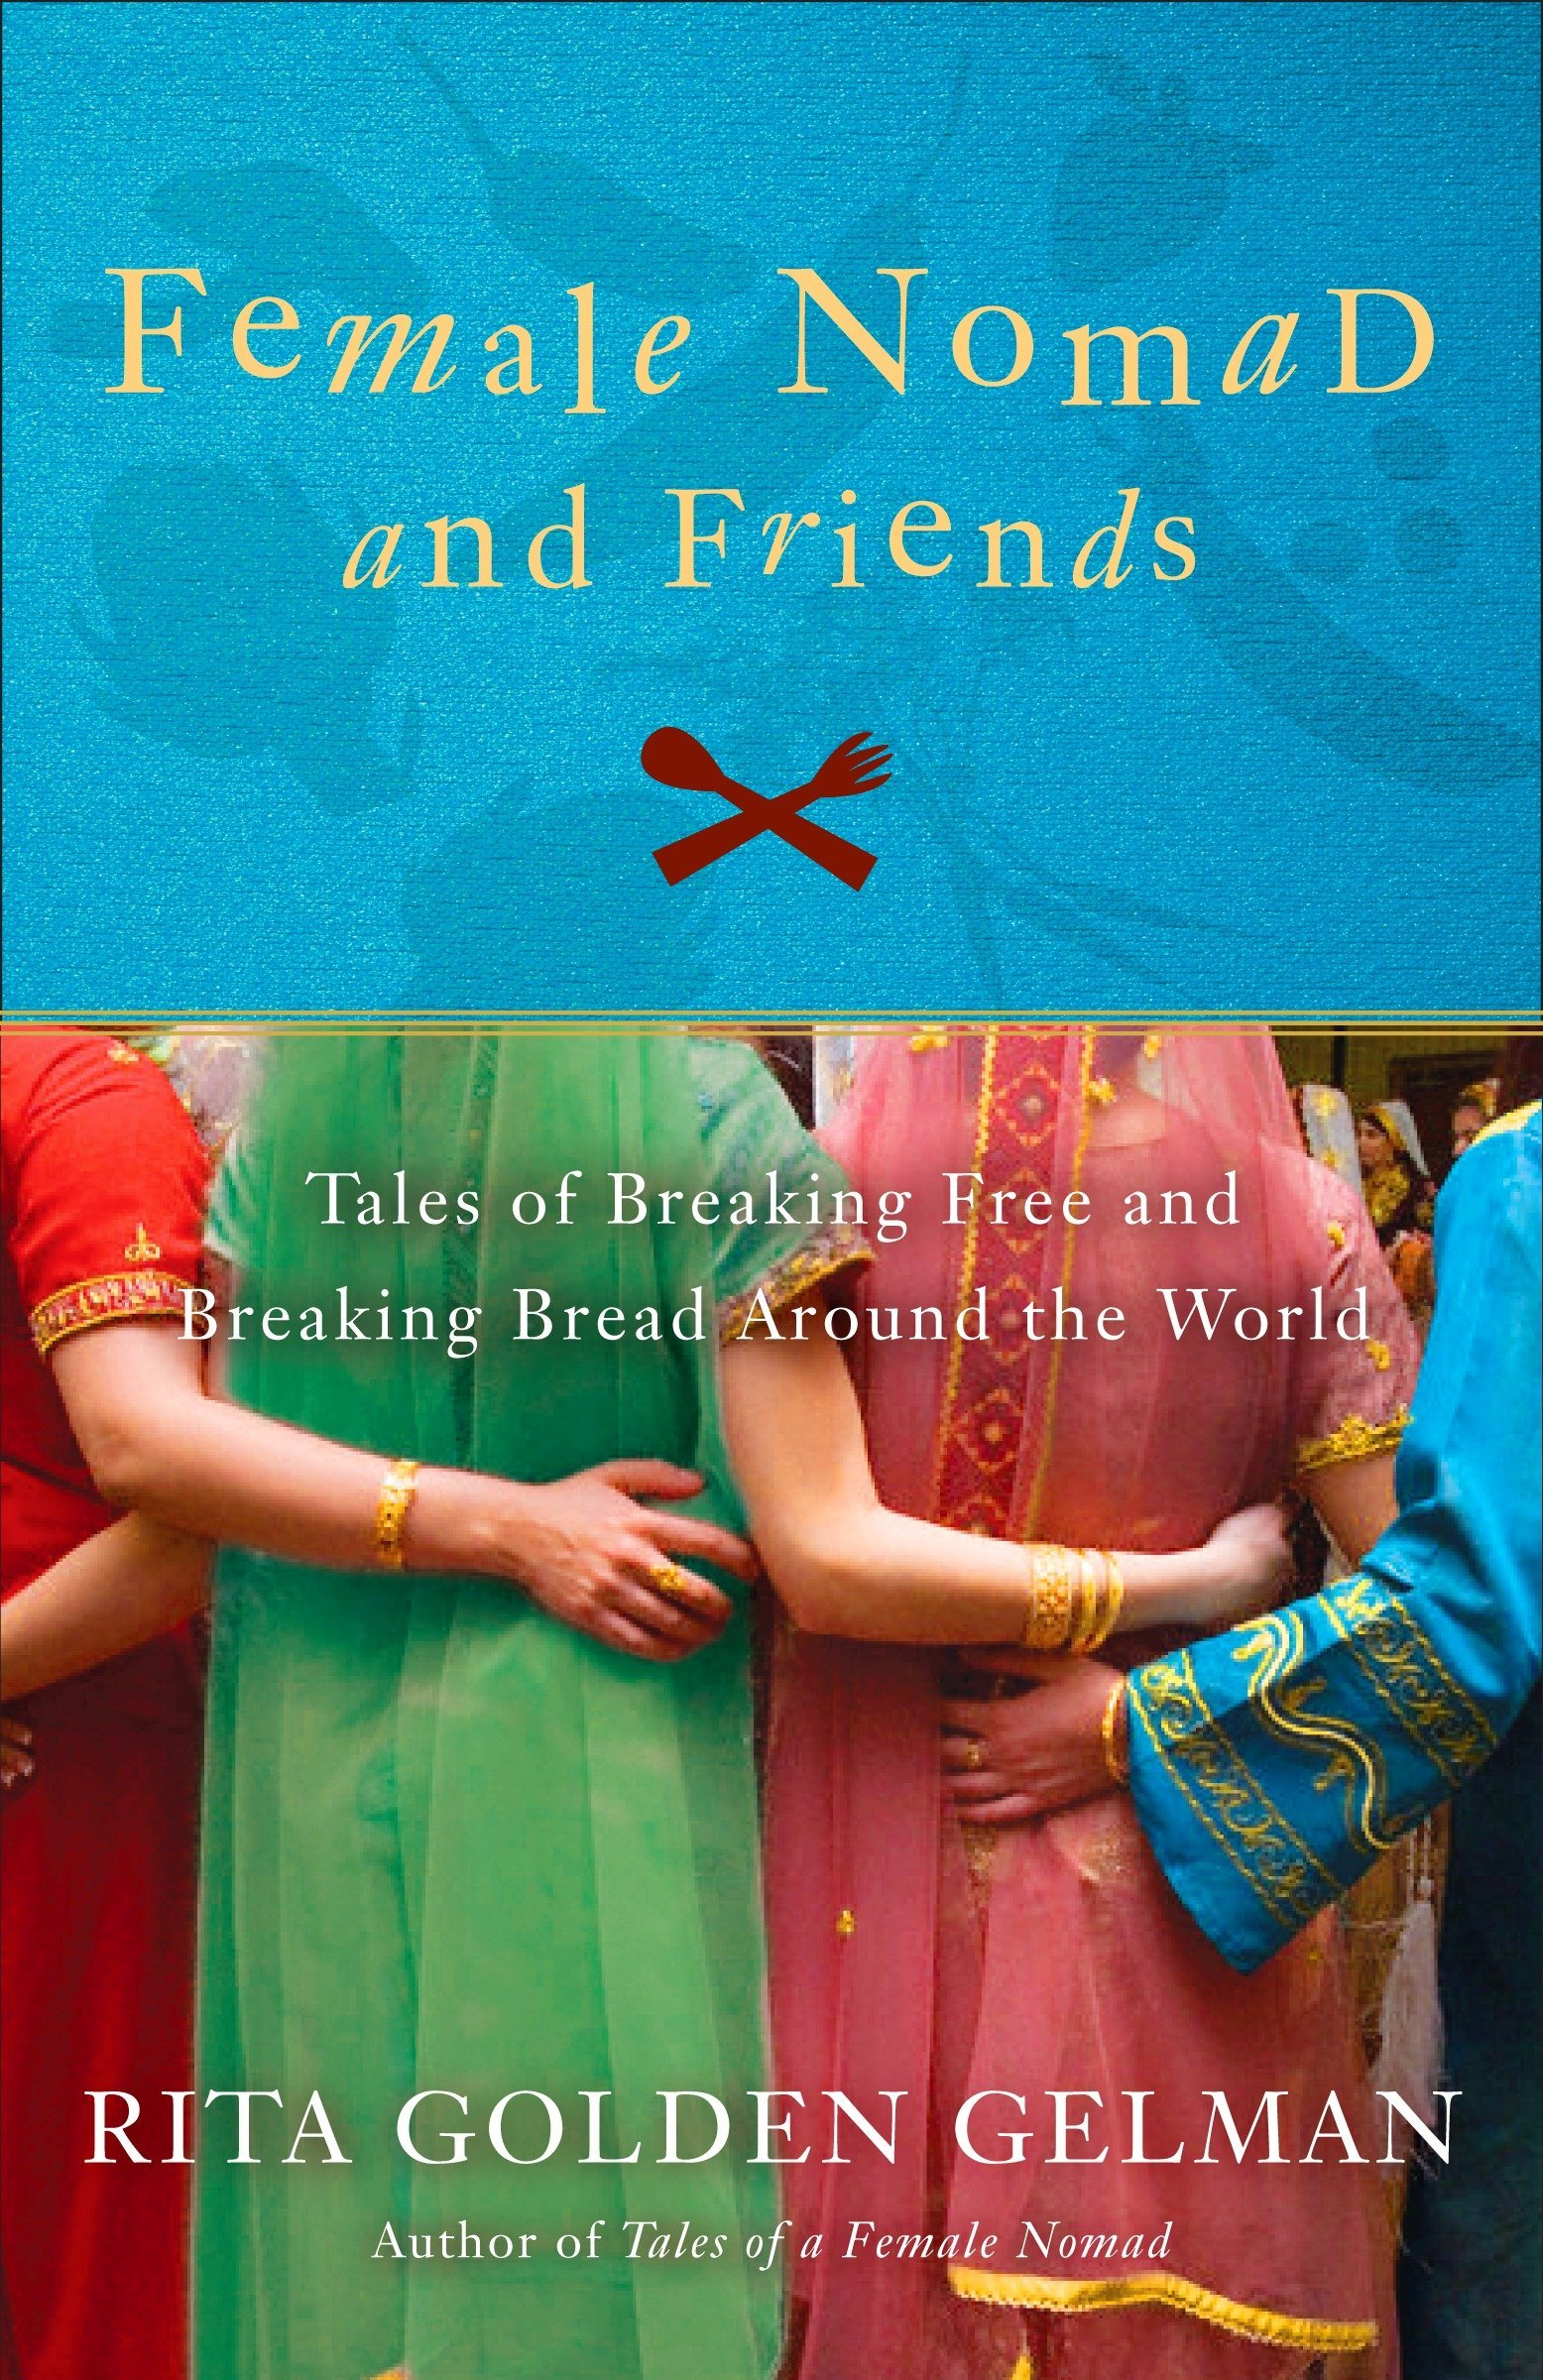 Female Nomad and Friends: Tales of Breaking Free and Breaking Bread Around  the World: Rita Golden Gelman: 9780307588012: Amazon.com: Books